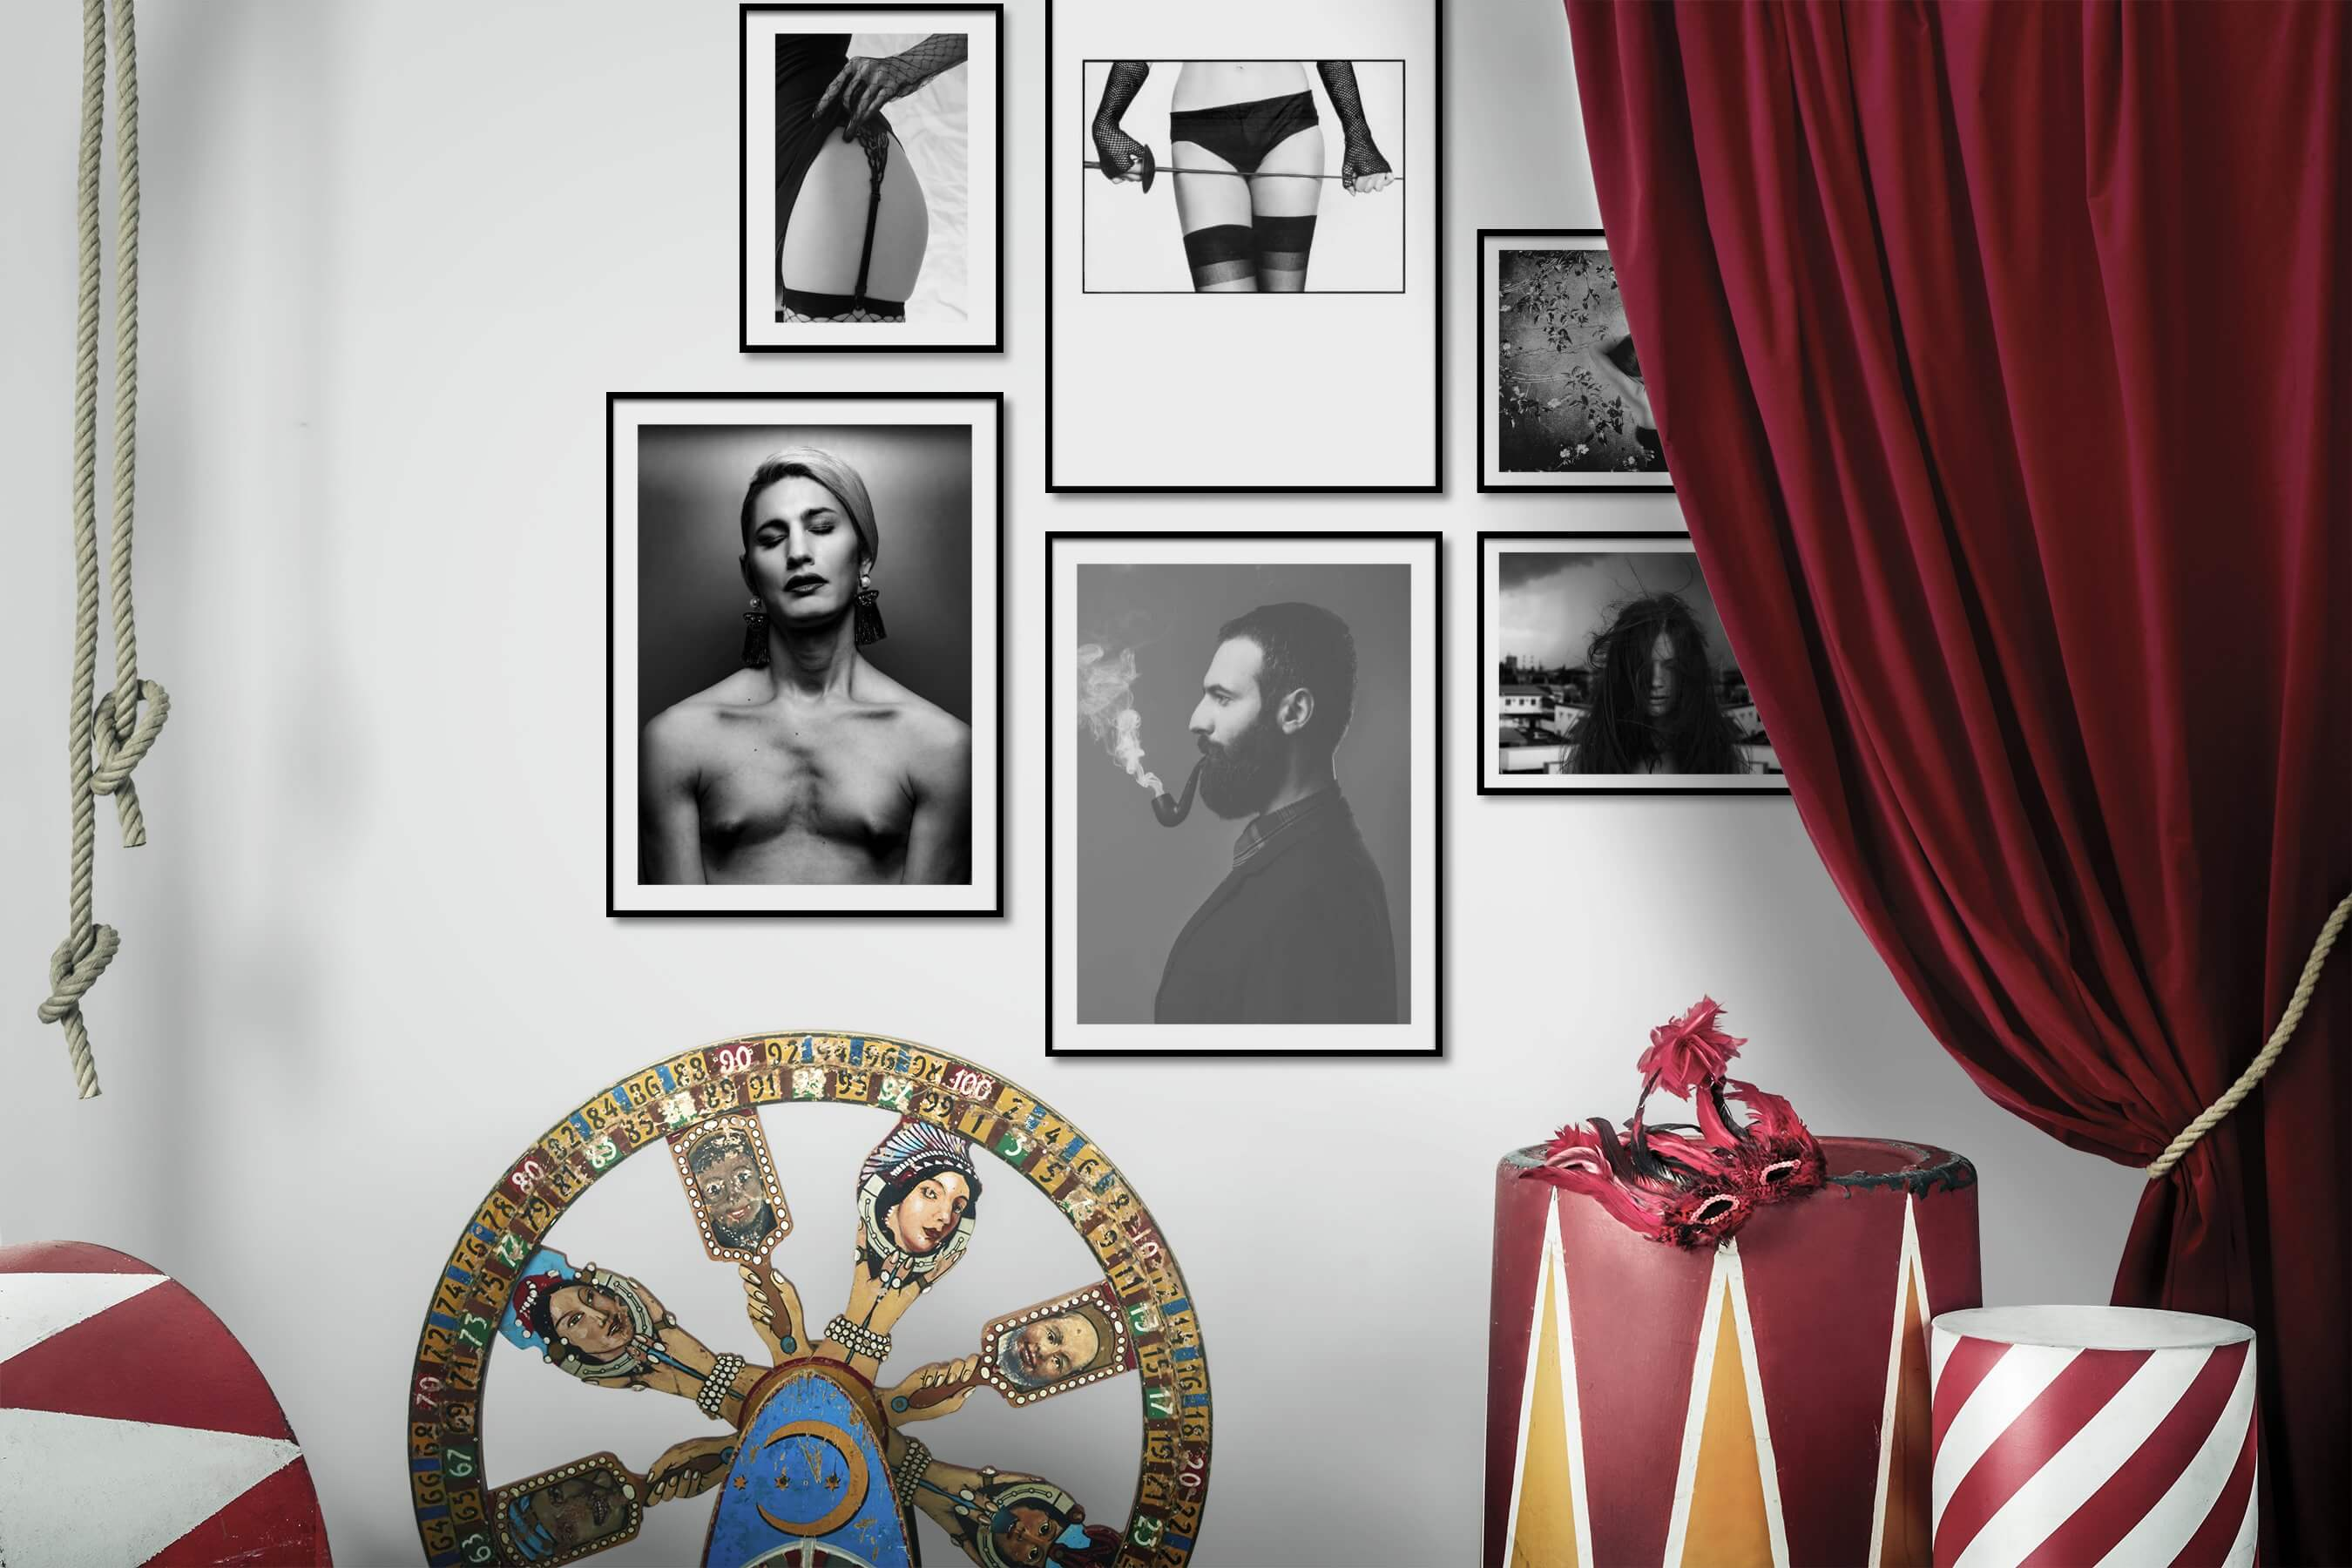 Gallery wall idea with six framed pictures arranged on a wall depicting Fashion & Beauty, Black & White, Bold, and City Life